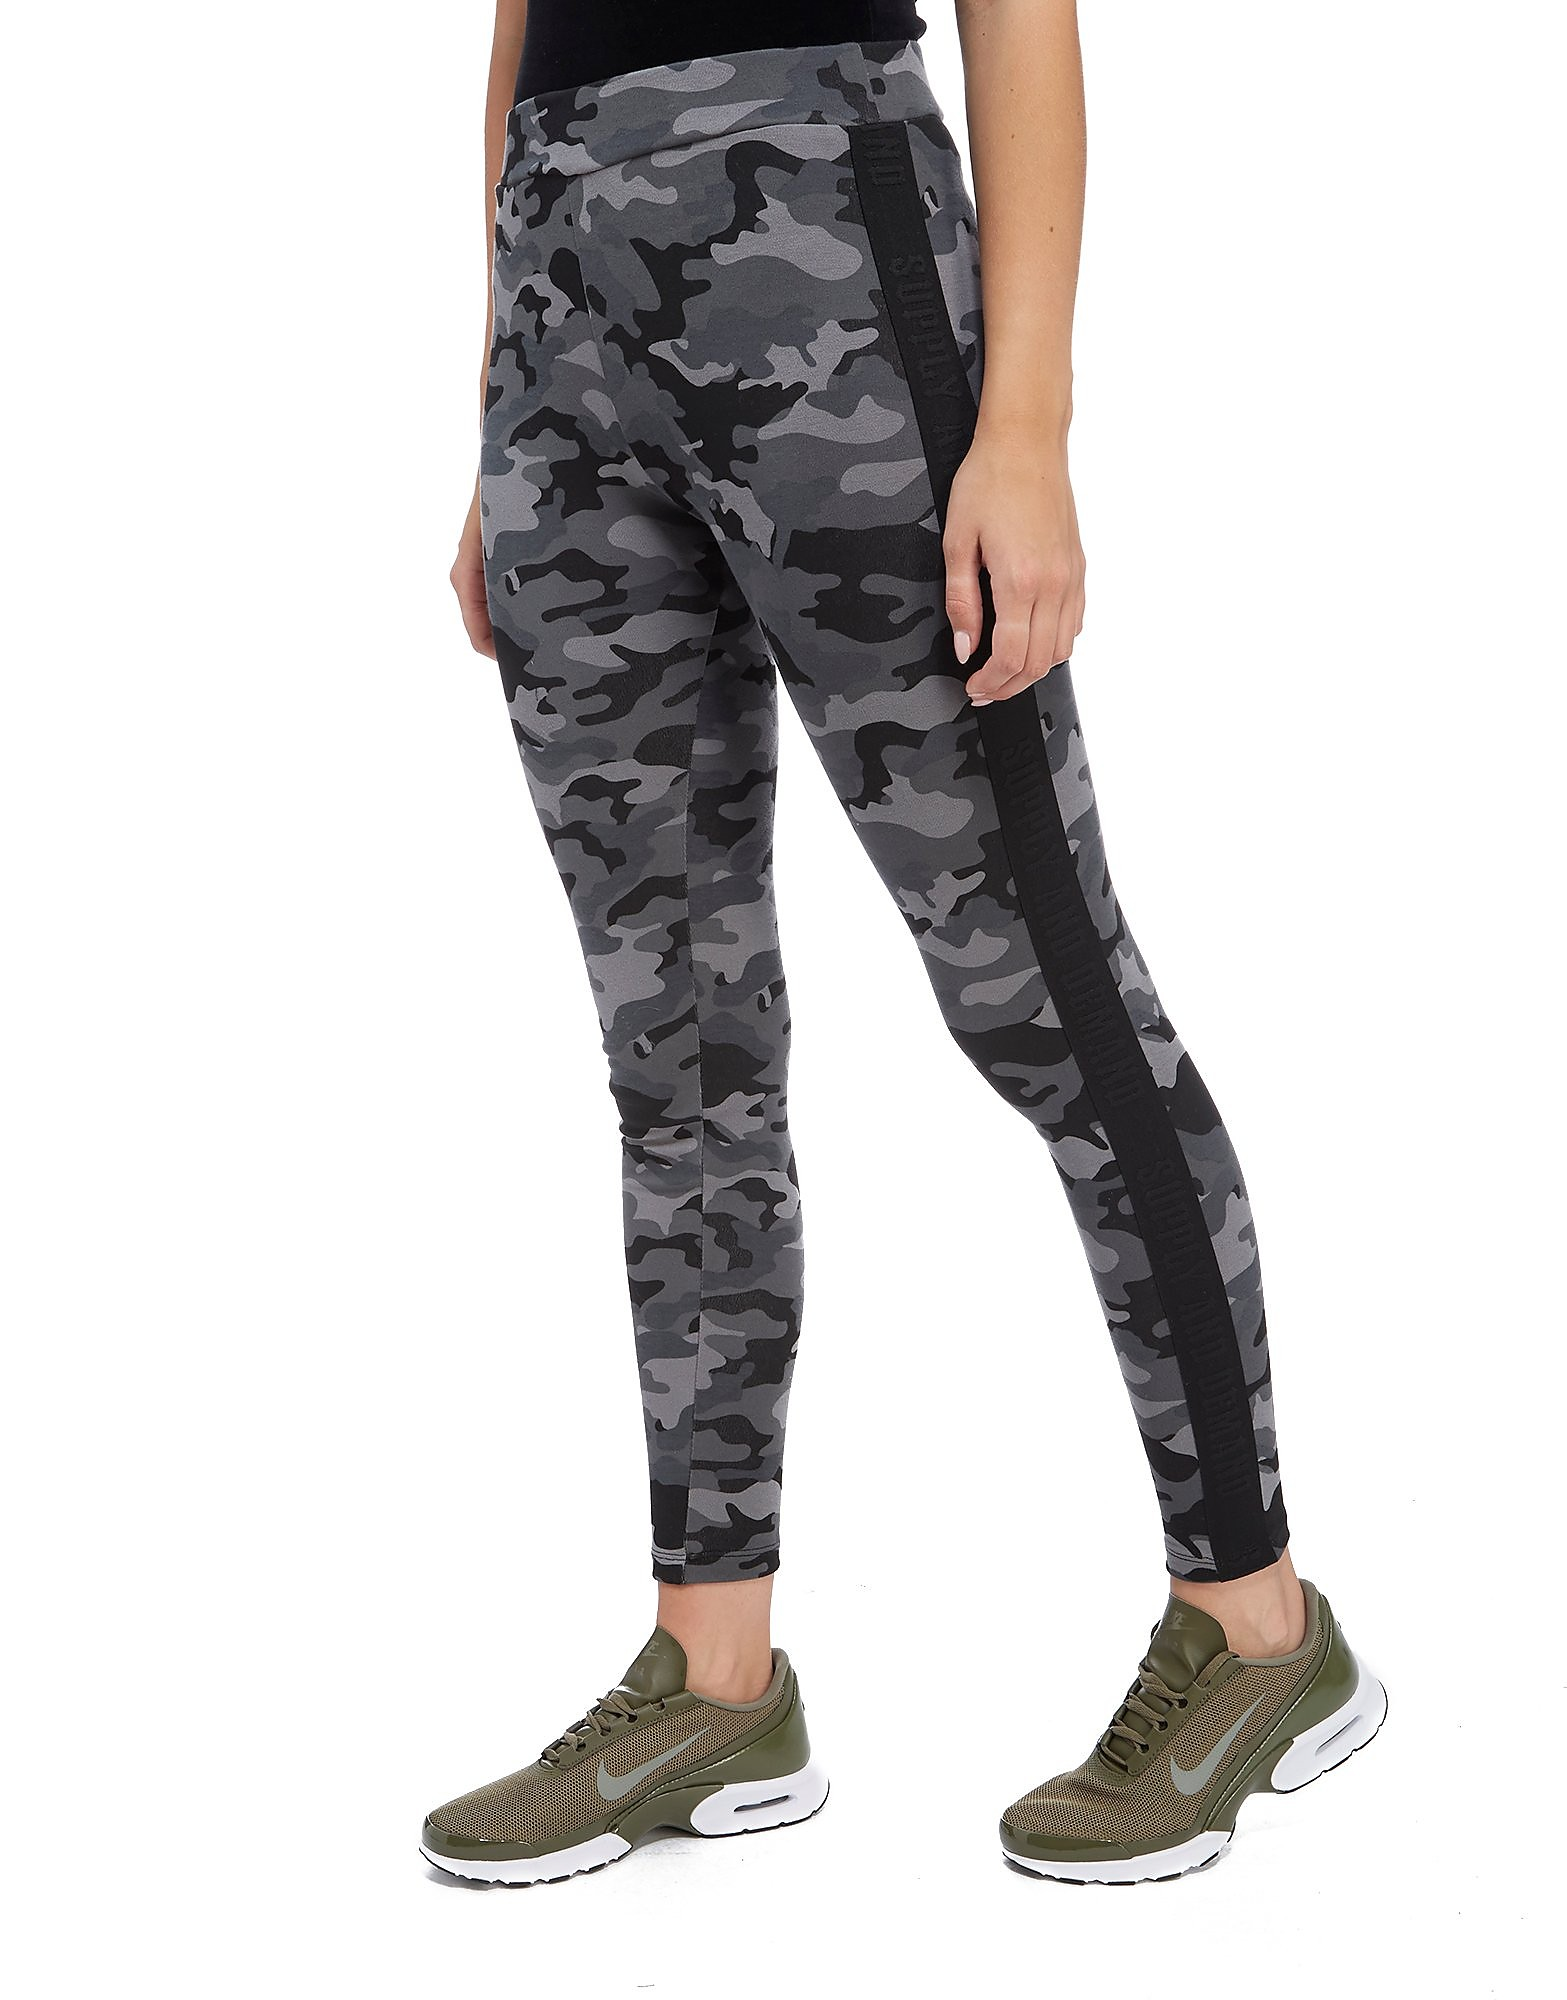 Supply & Demand Tape Camo Leggings